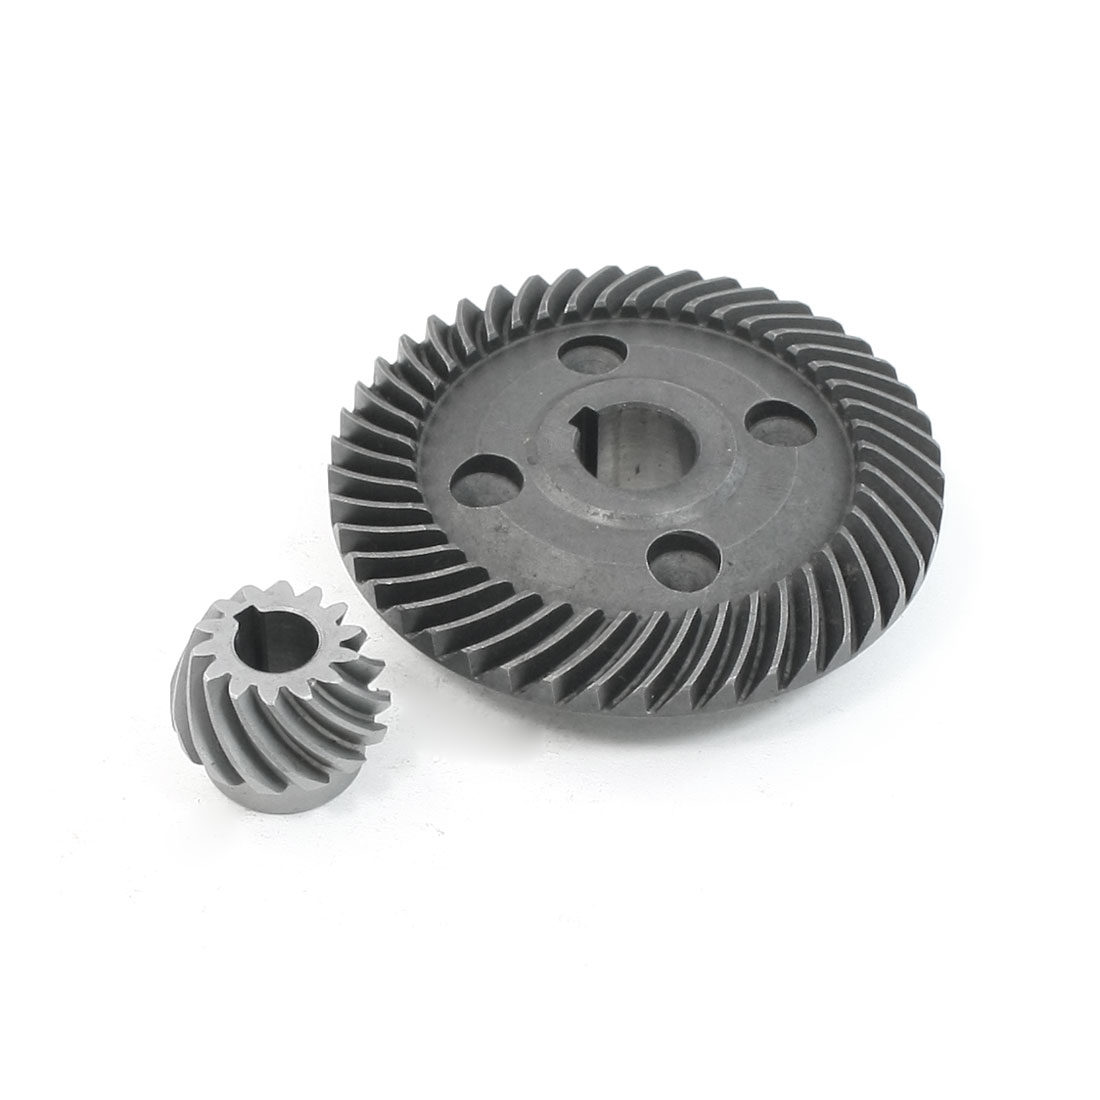 78mm Spiral Bevel Gear 26.5mm Pinion Set for Hitachi 180 Angle Grinder